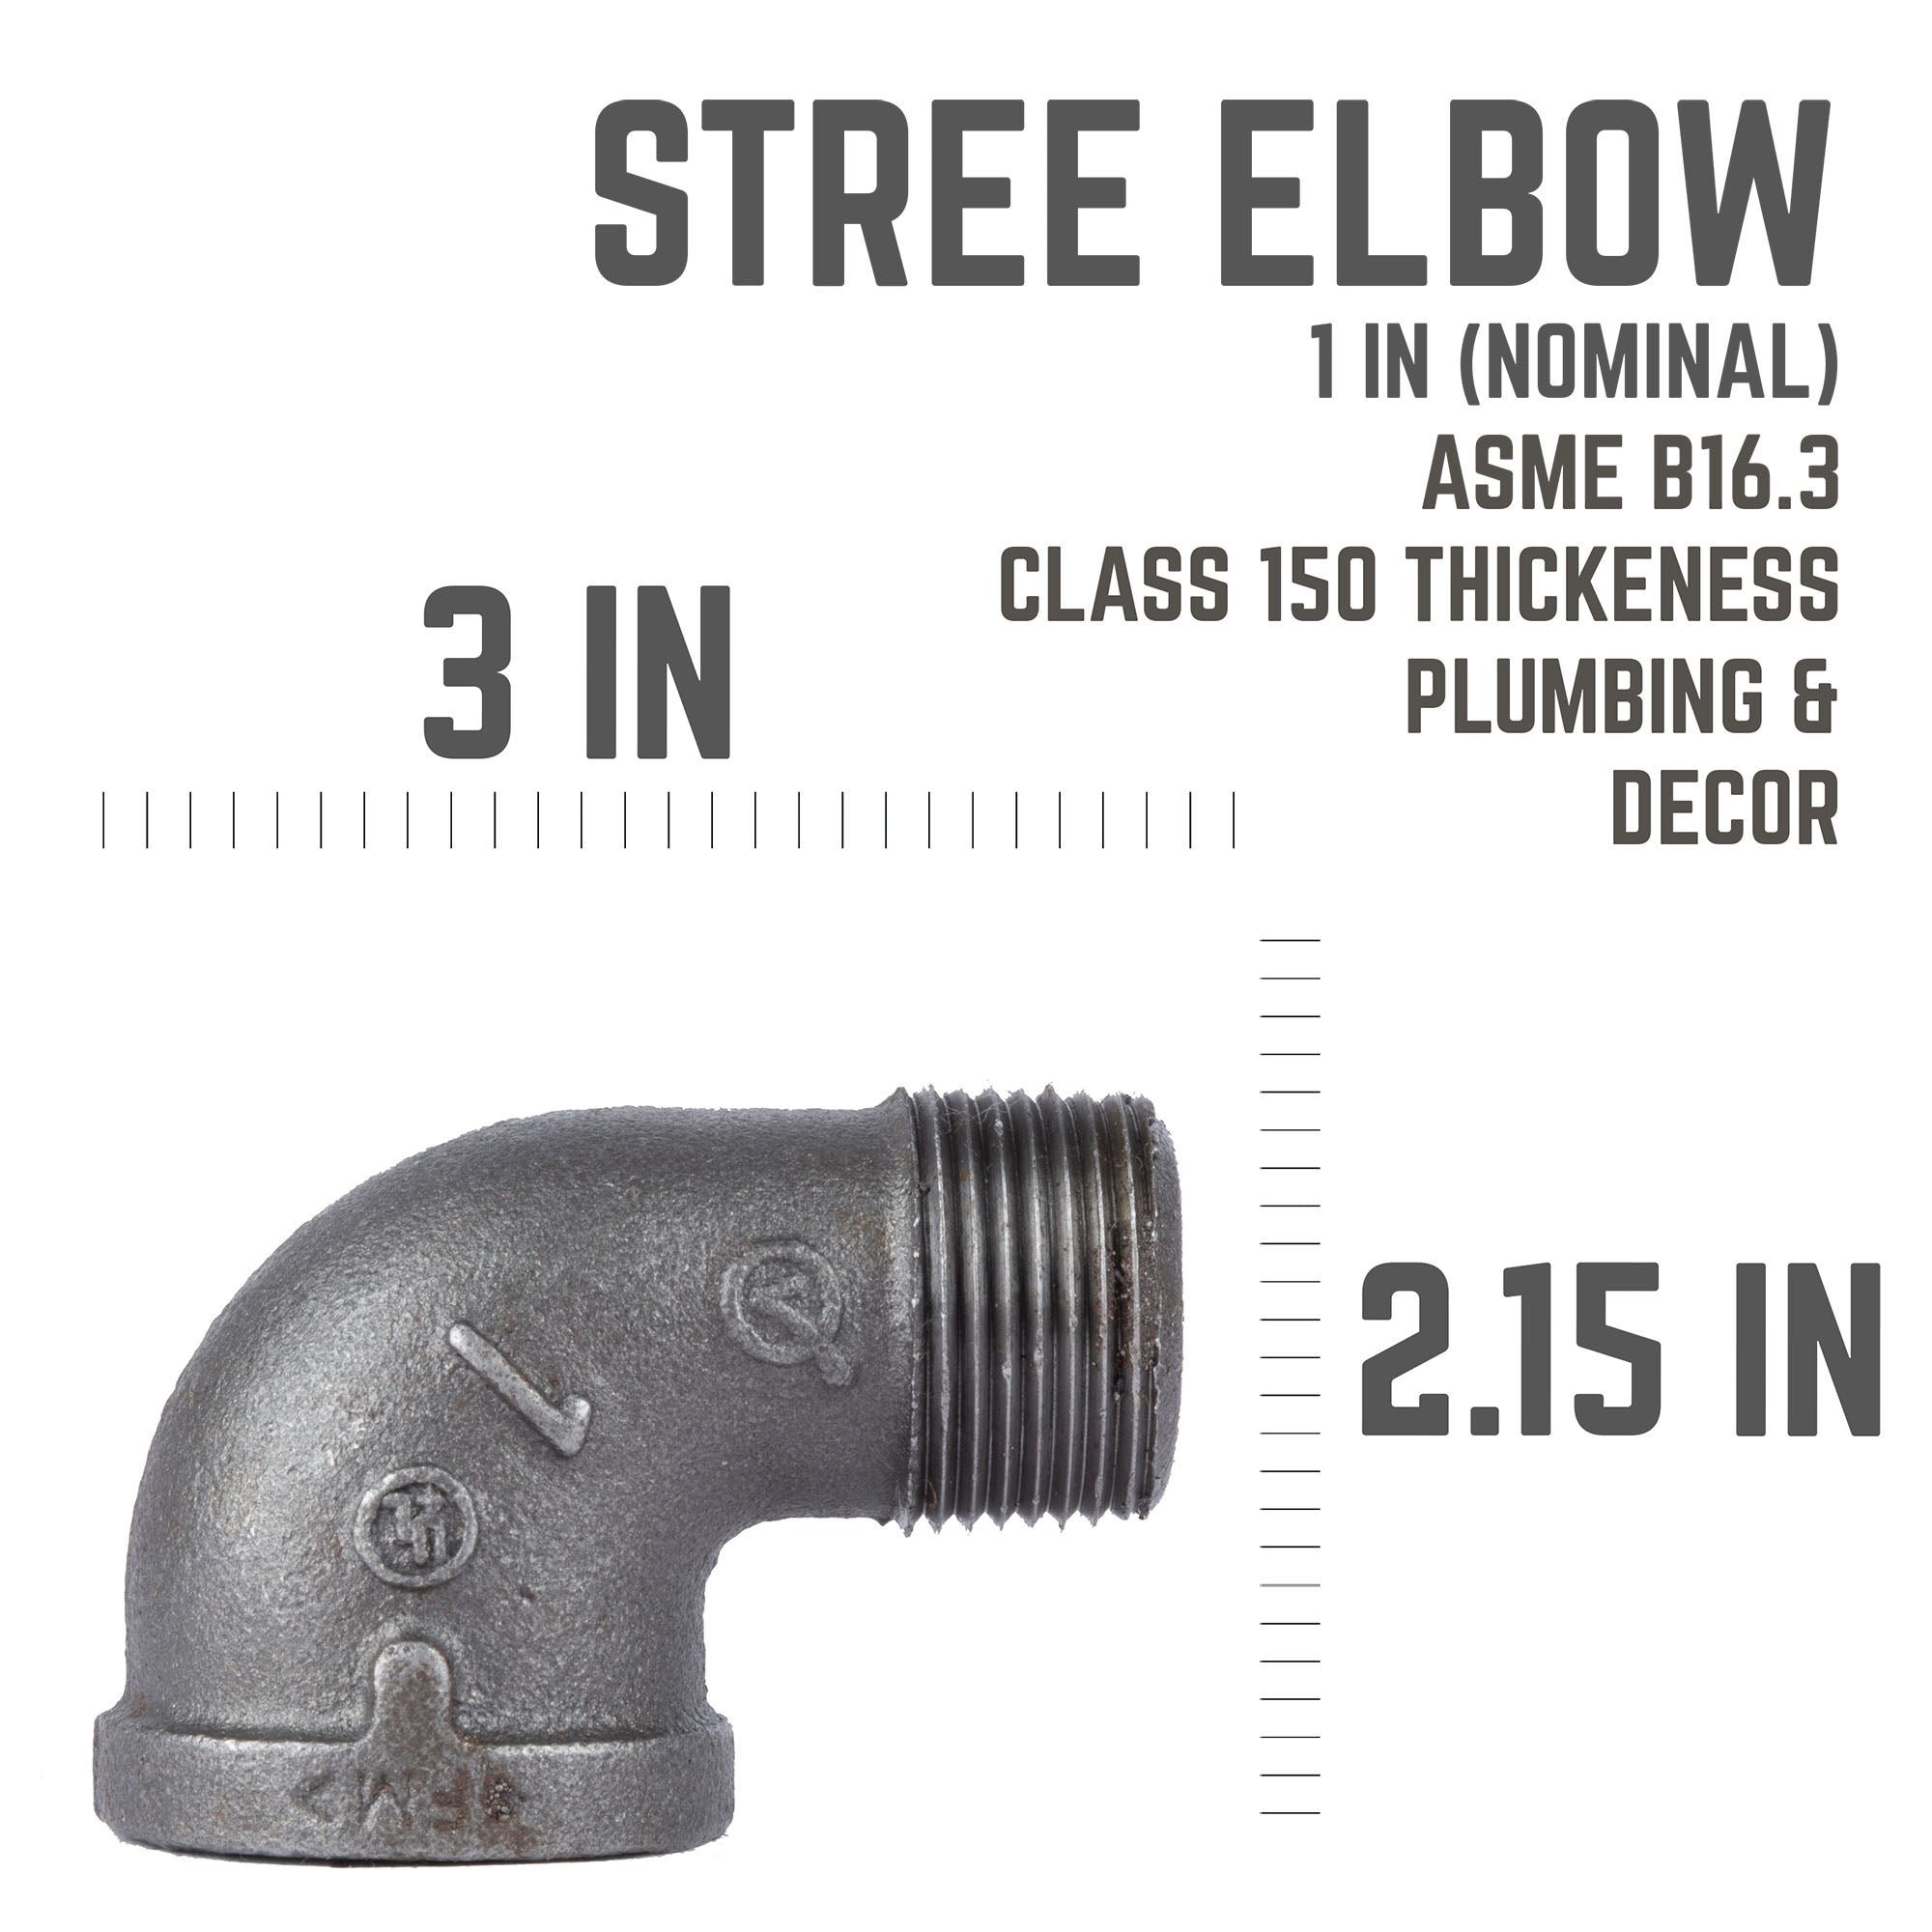 1 In 90 Degree Street Elbow - Pipe Decor